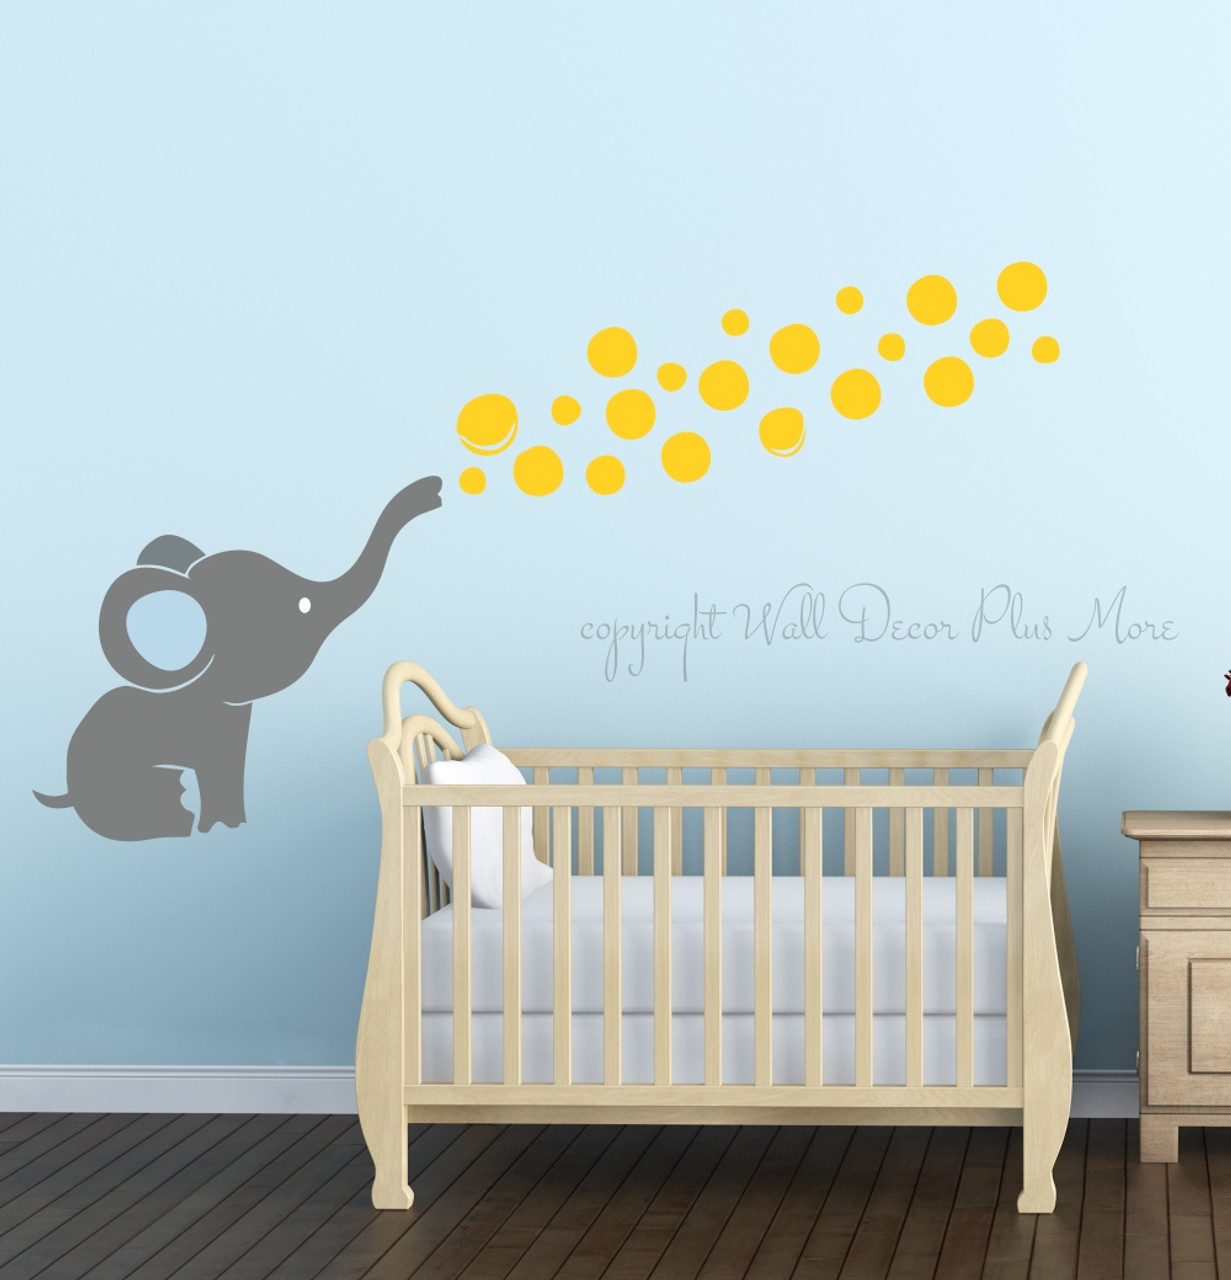 Elephant Twin Nursery Wall Art Nursery Room Decor For Twins: Elephant Wall Decal With Floating Bubbles, Cool Nursery